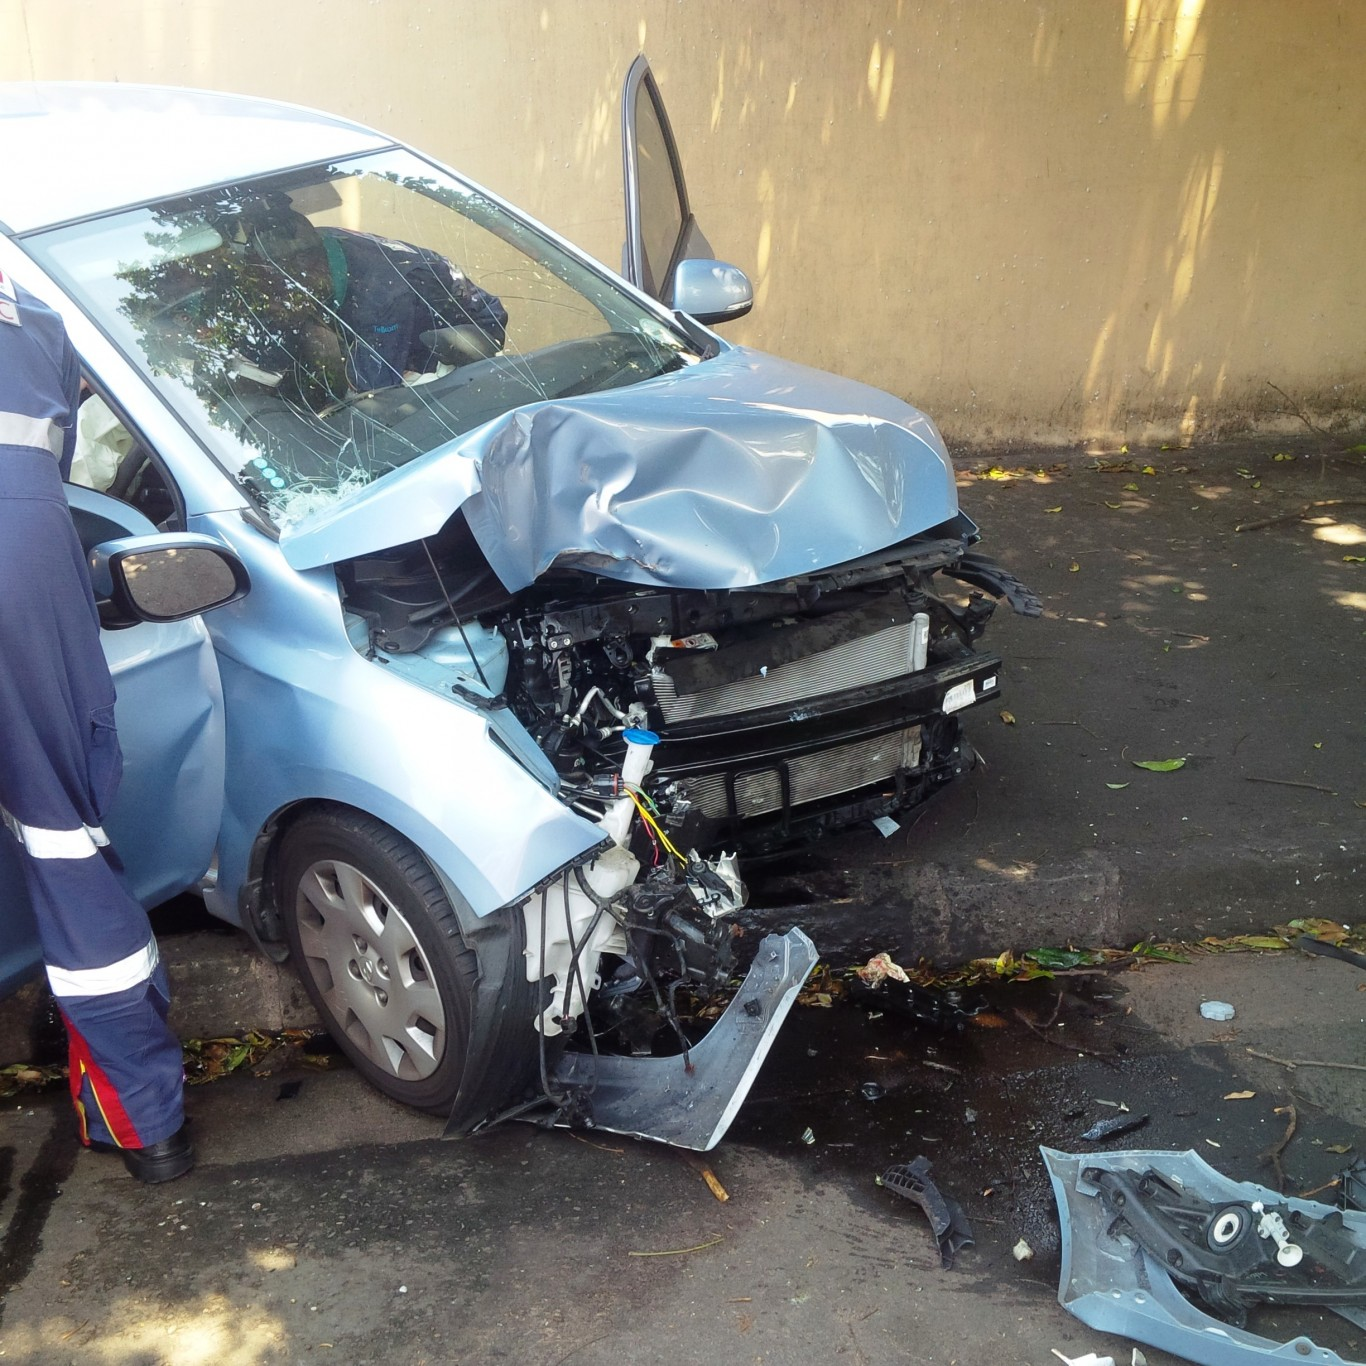 Vehicle collides with tree leaving driver injured